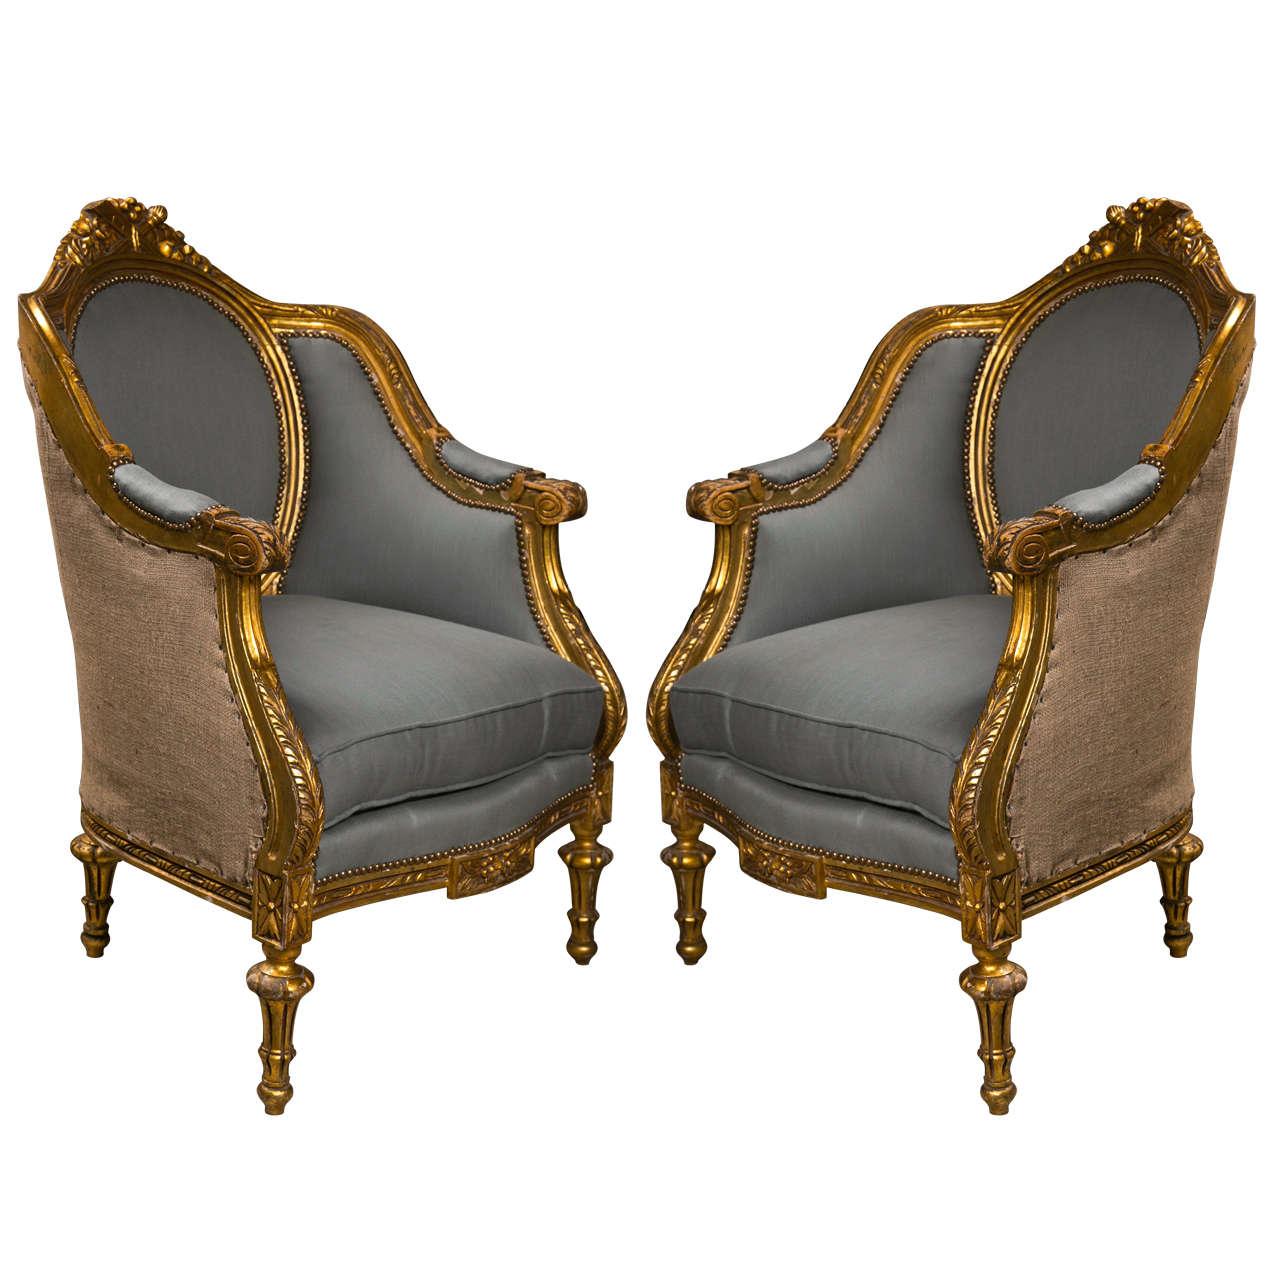 Pair Of French Louis Xvi Style Bergere Chairs At 1stdibs